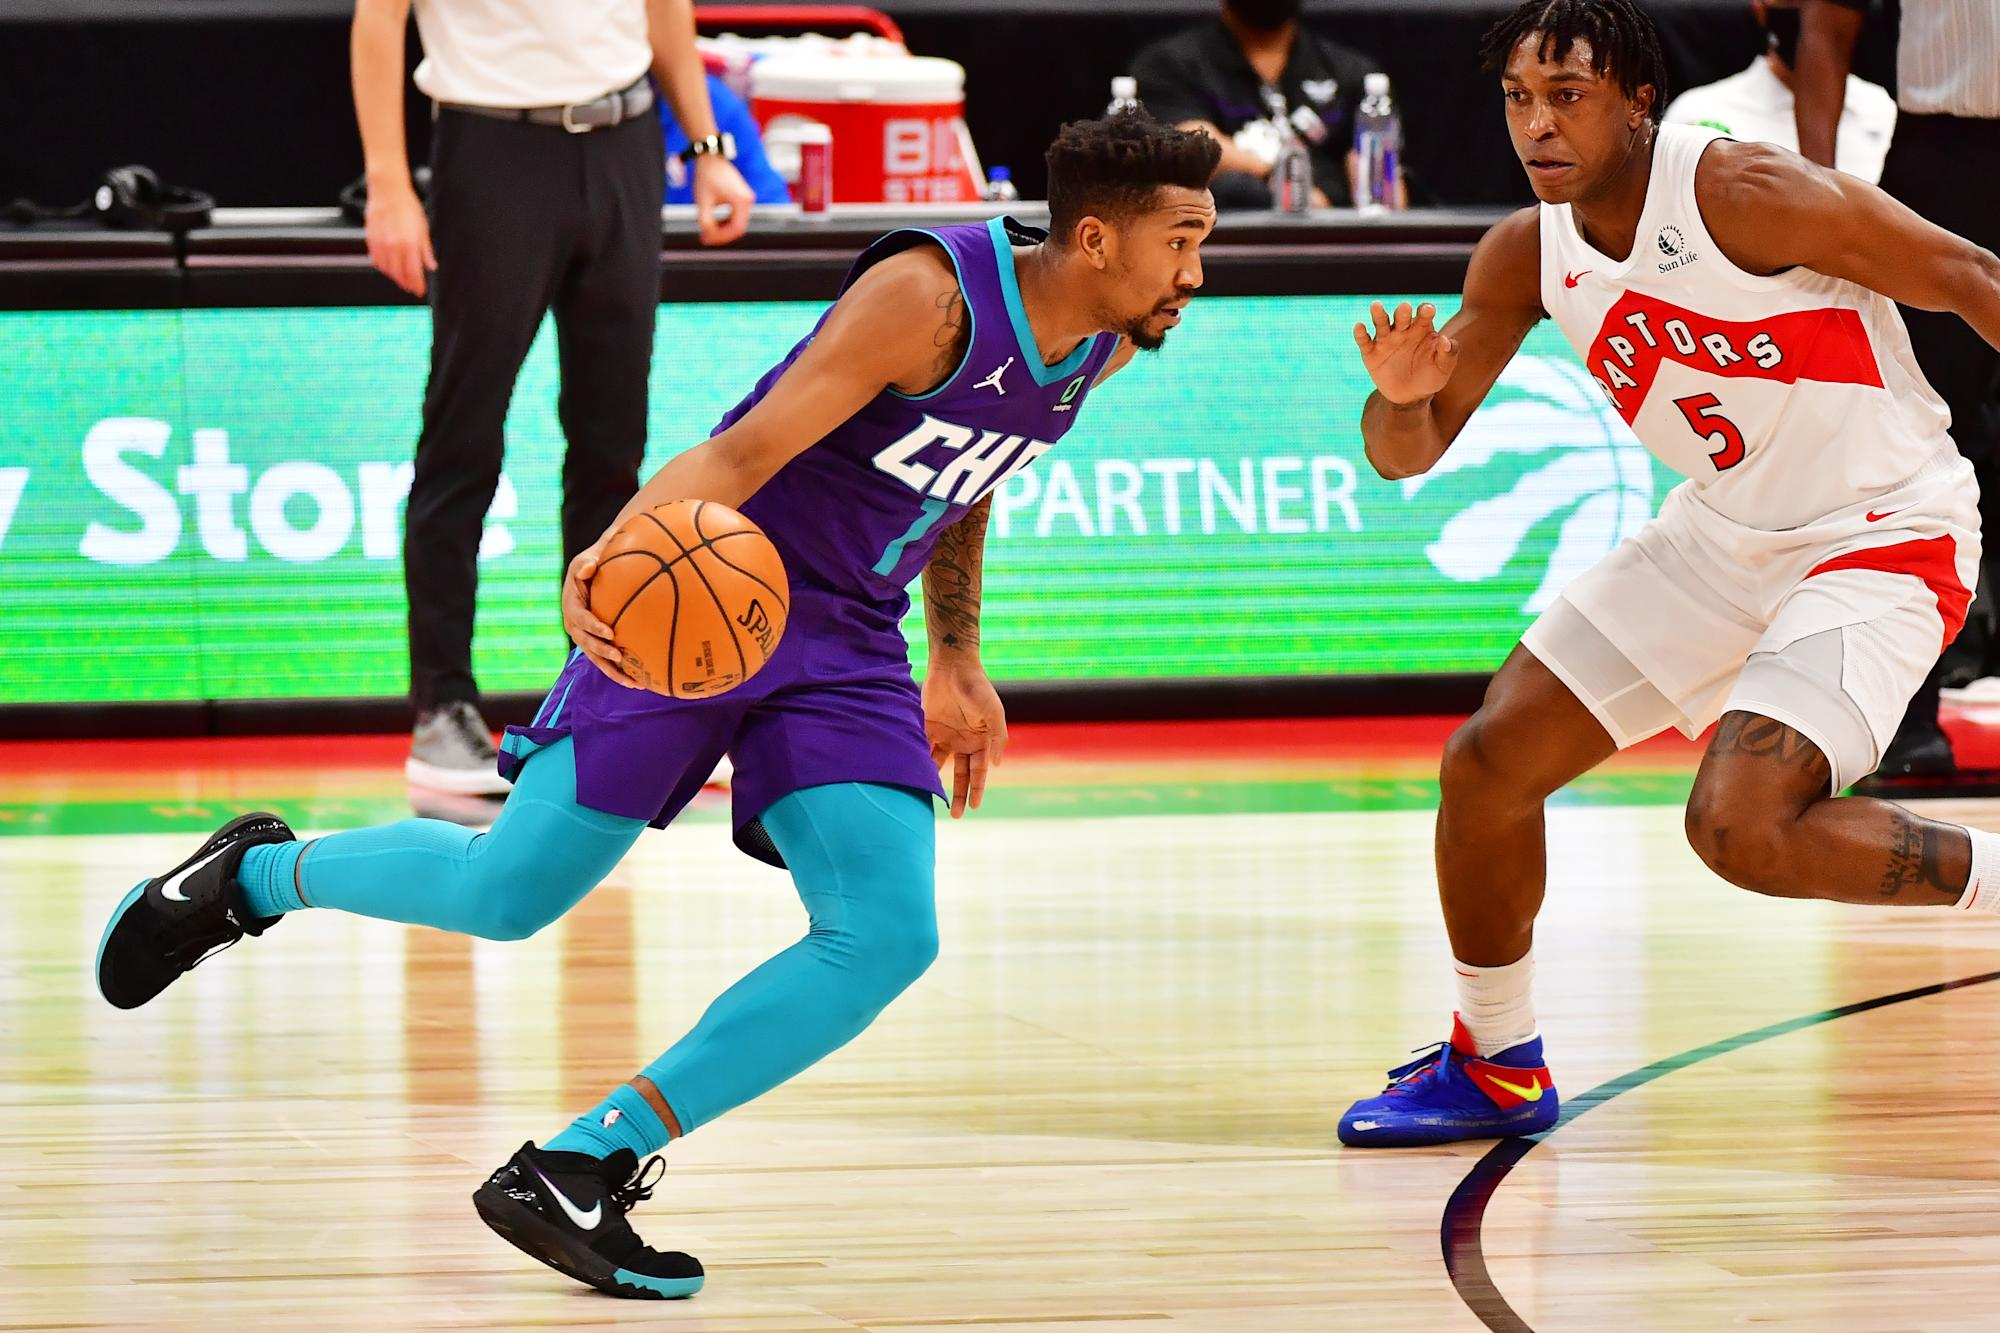 10 things: Stanley Johnson forces back-to-back airballs as Raptors win narrowly vs. Hornets